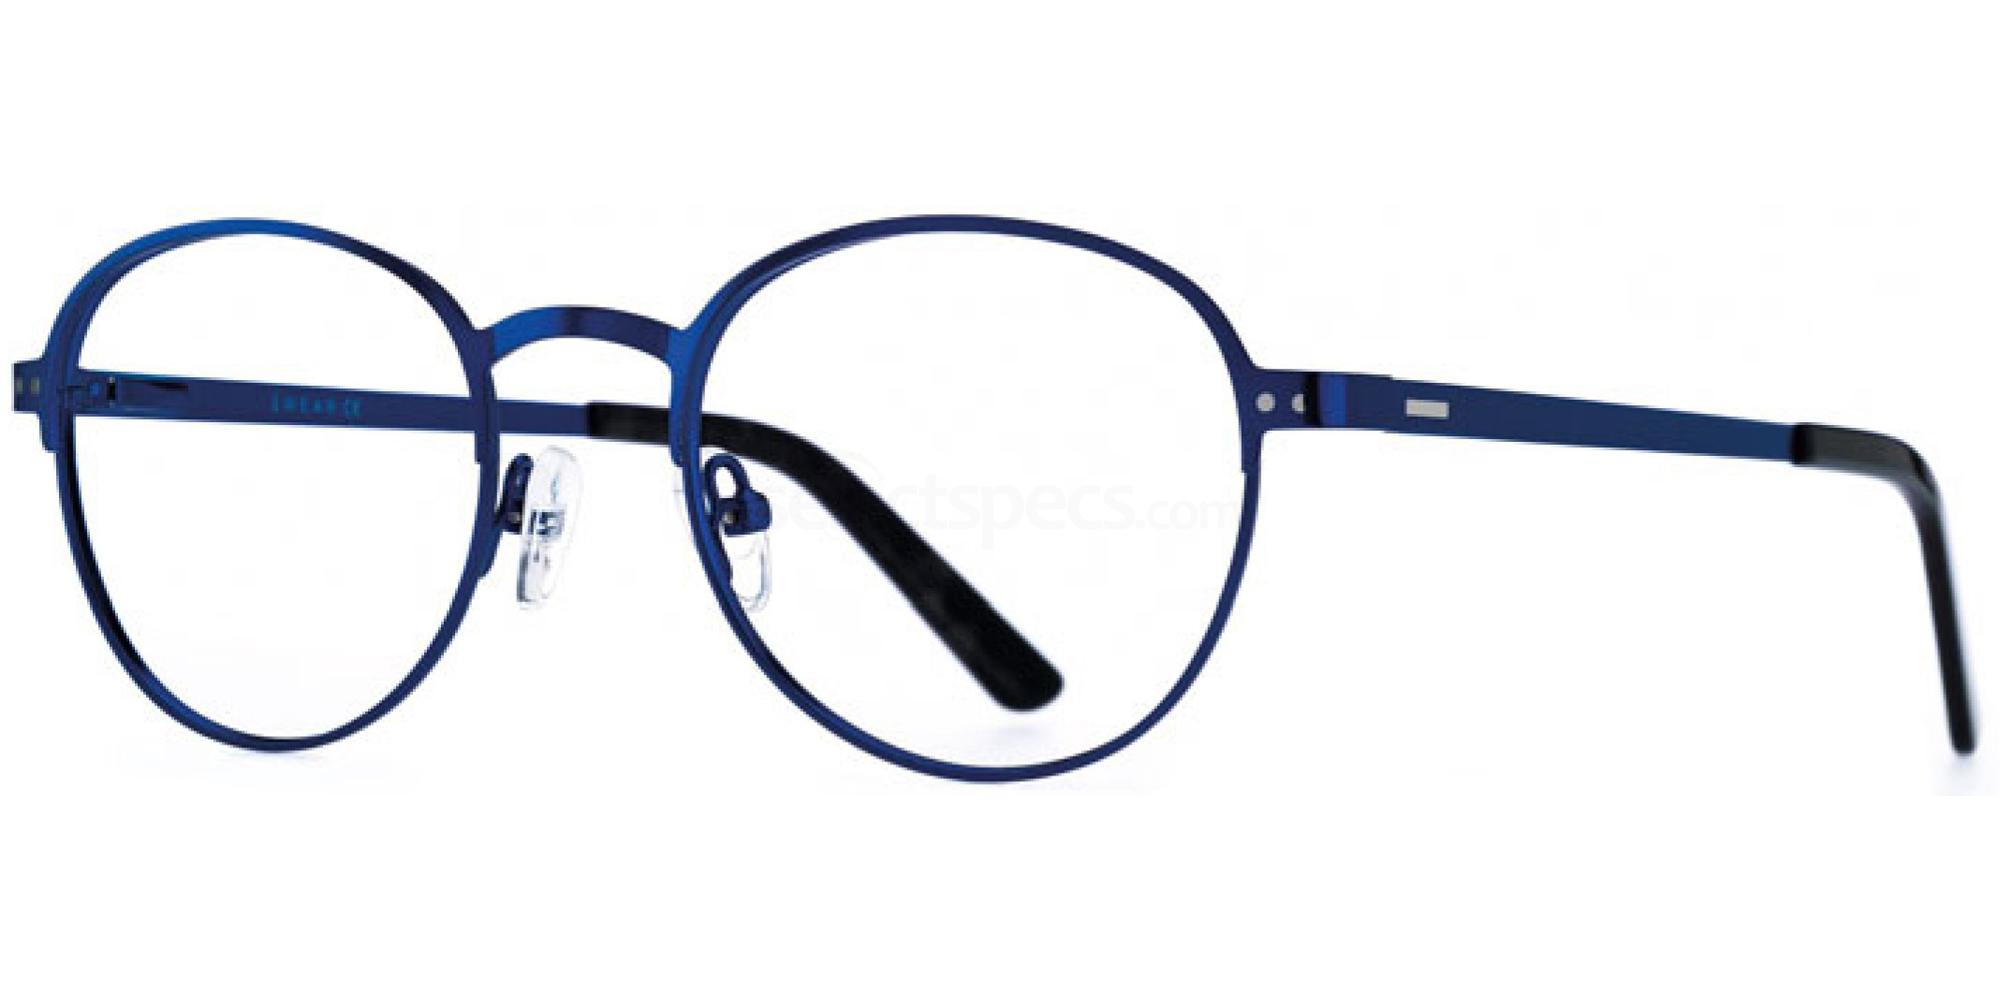 classic blue prescription glasses i Wear